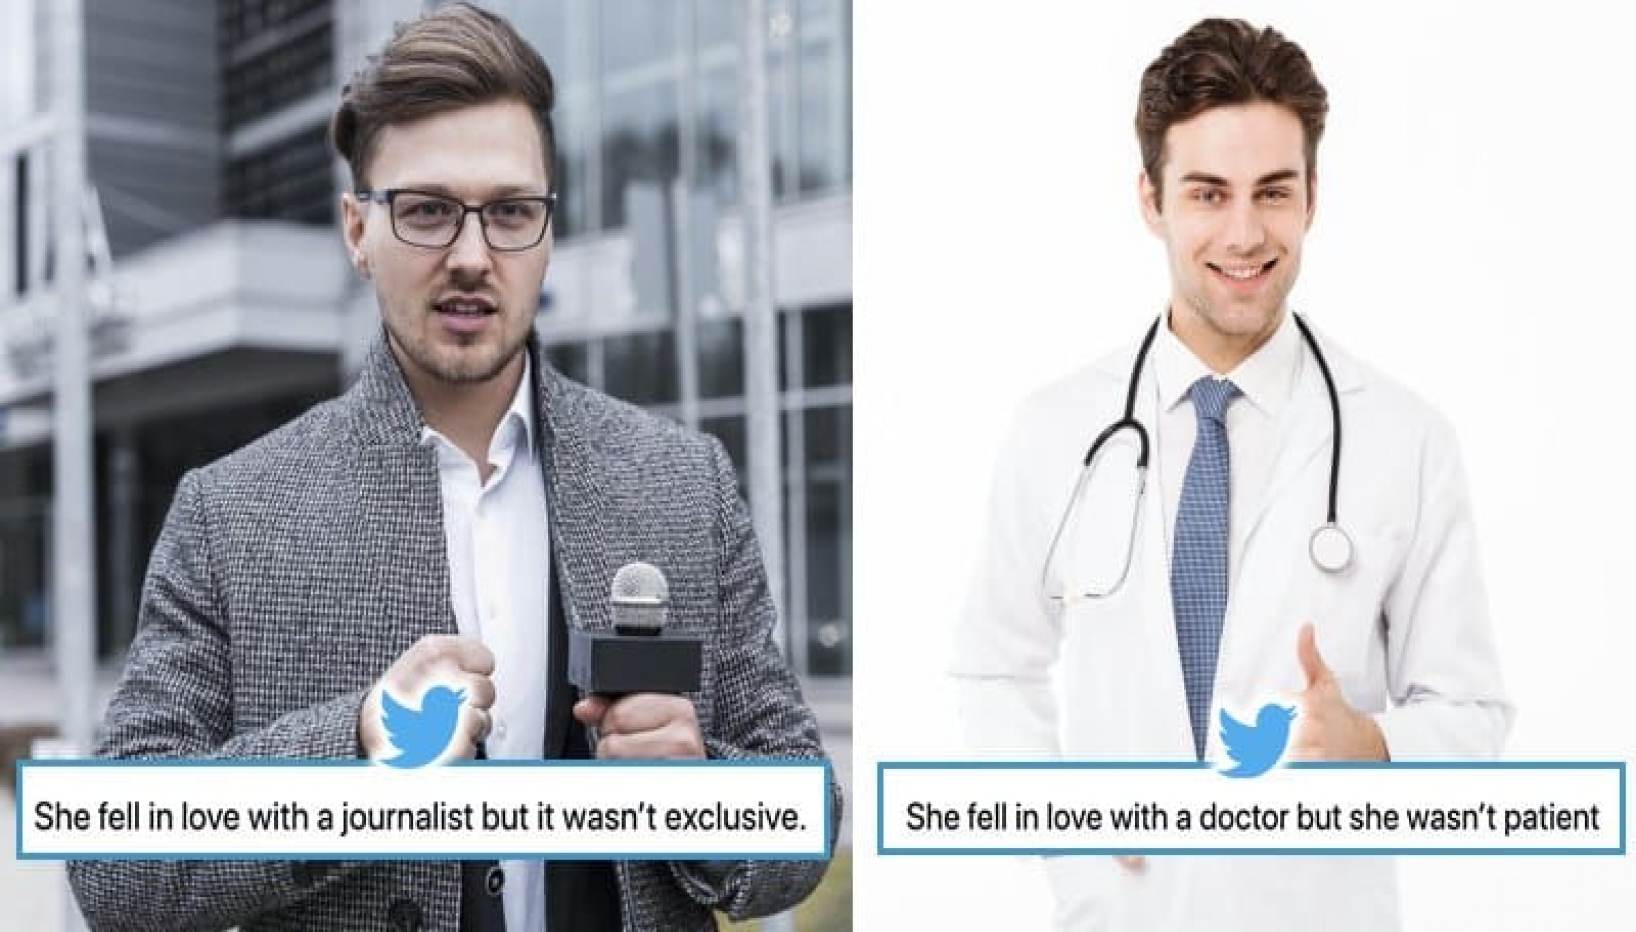 'She Fell in Love With a..', Twitter Shares Hilarious Puns About Falling in Love With People Of Different Professions